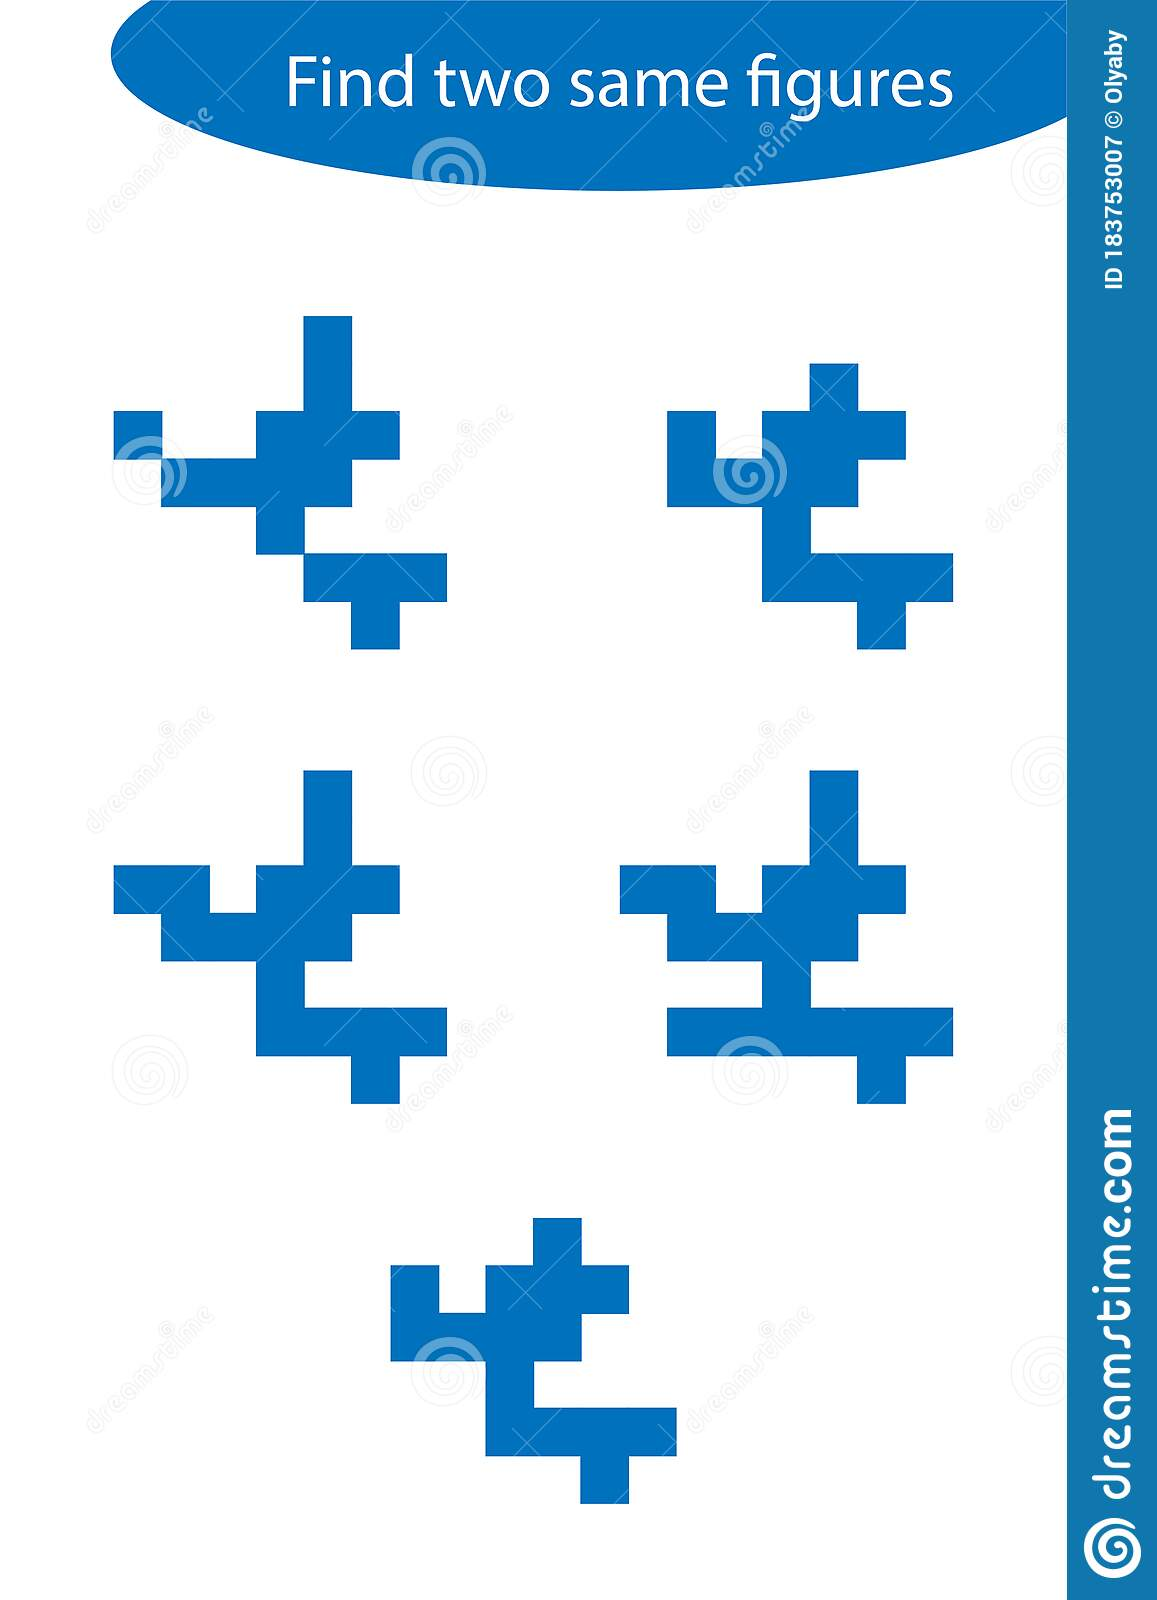 Find Two Identical Figures Fun Education Game For